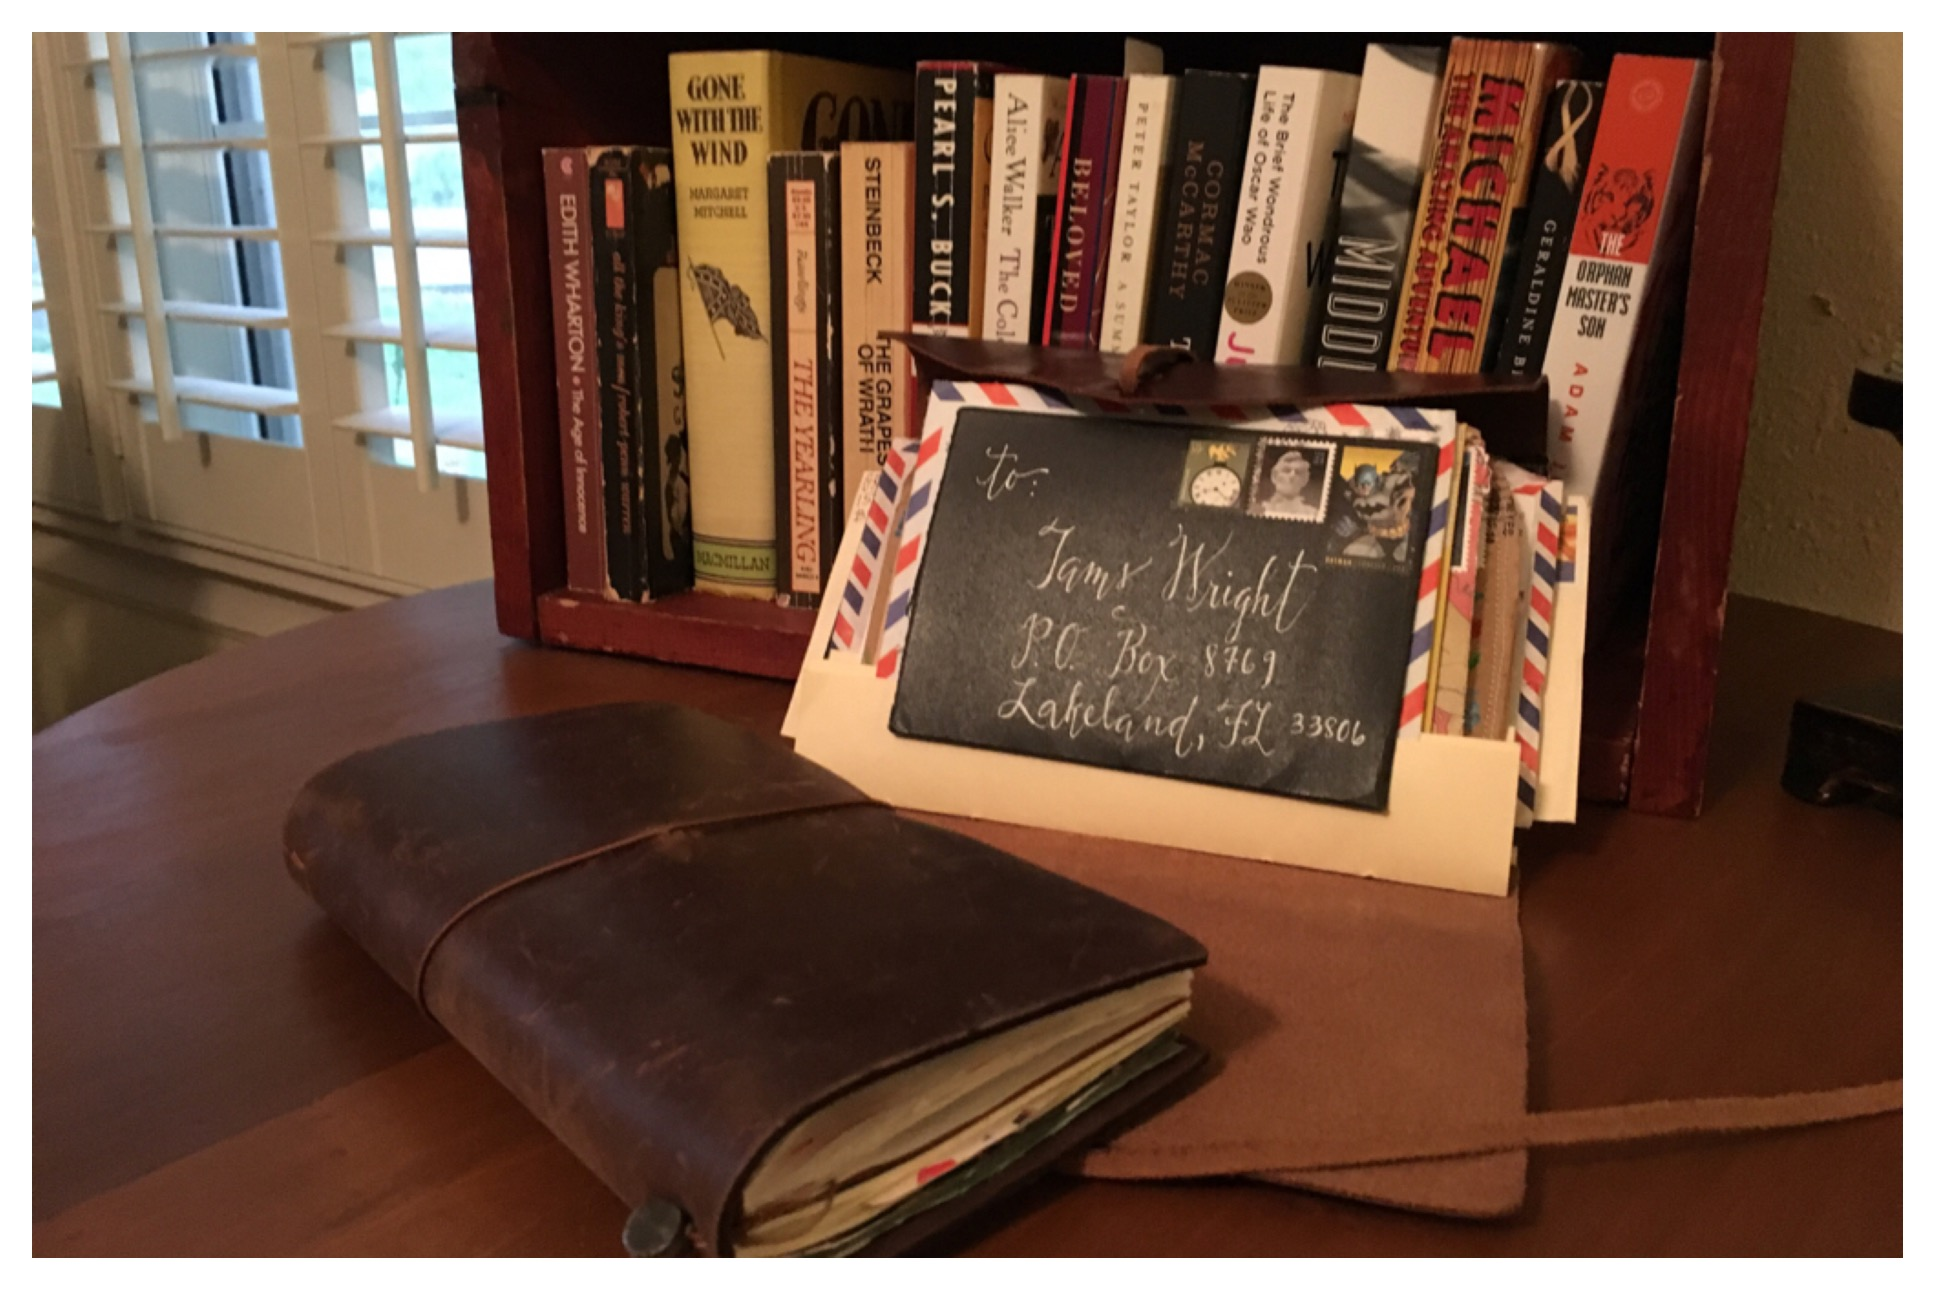 Letters bound in a leather journal can be displayed along with books in your office or home library.